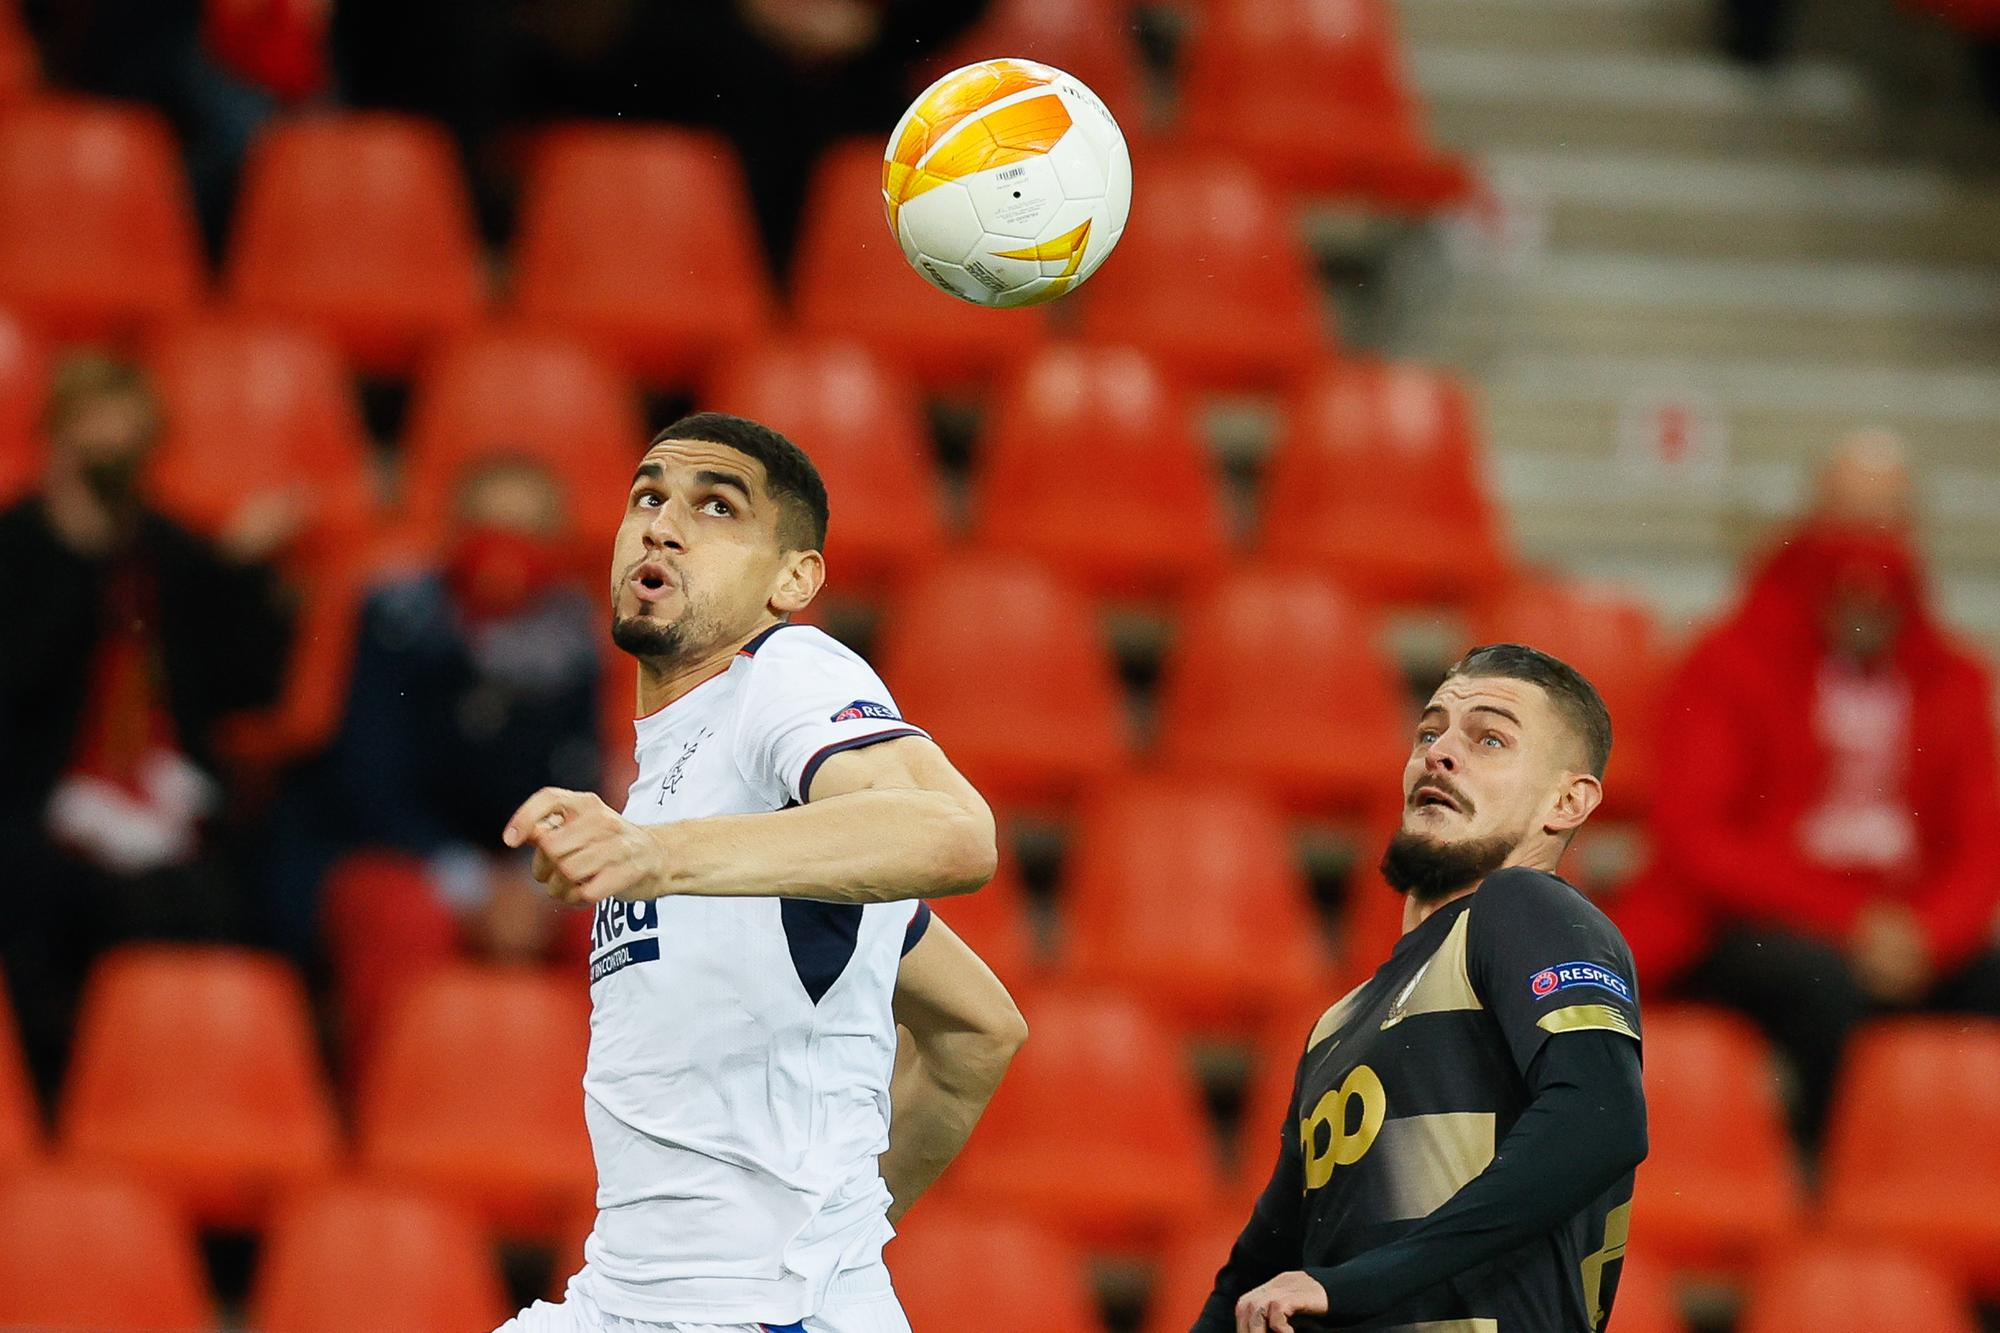 Rangers' European opponents Standard Liege hit with three further Covid cases